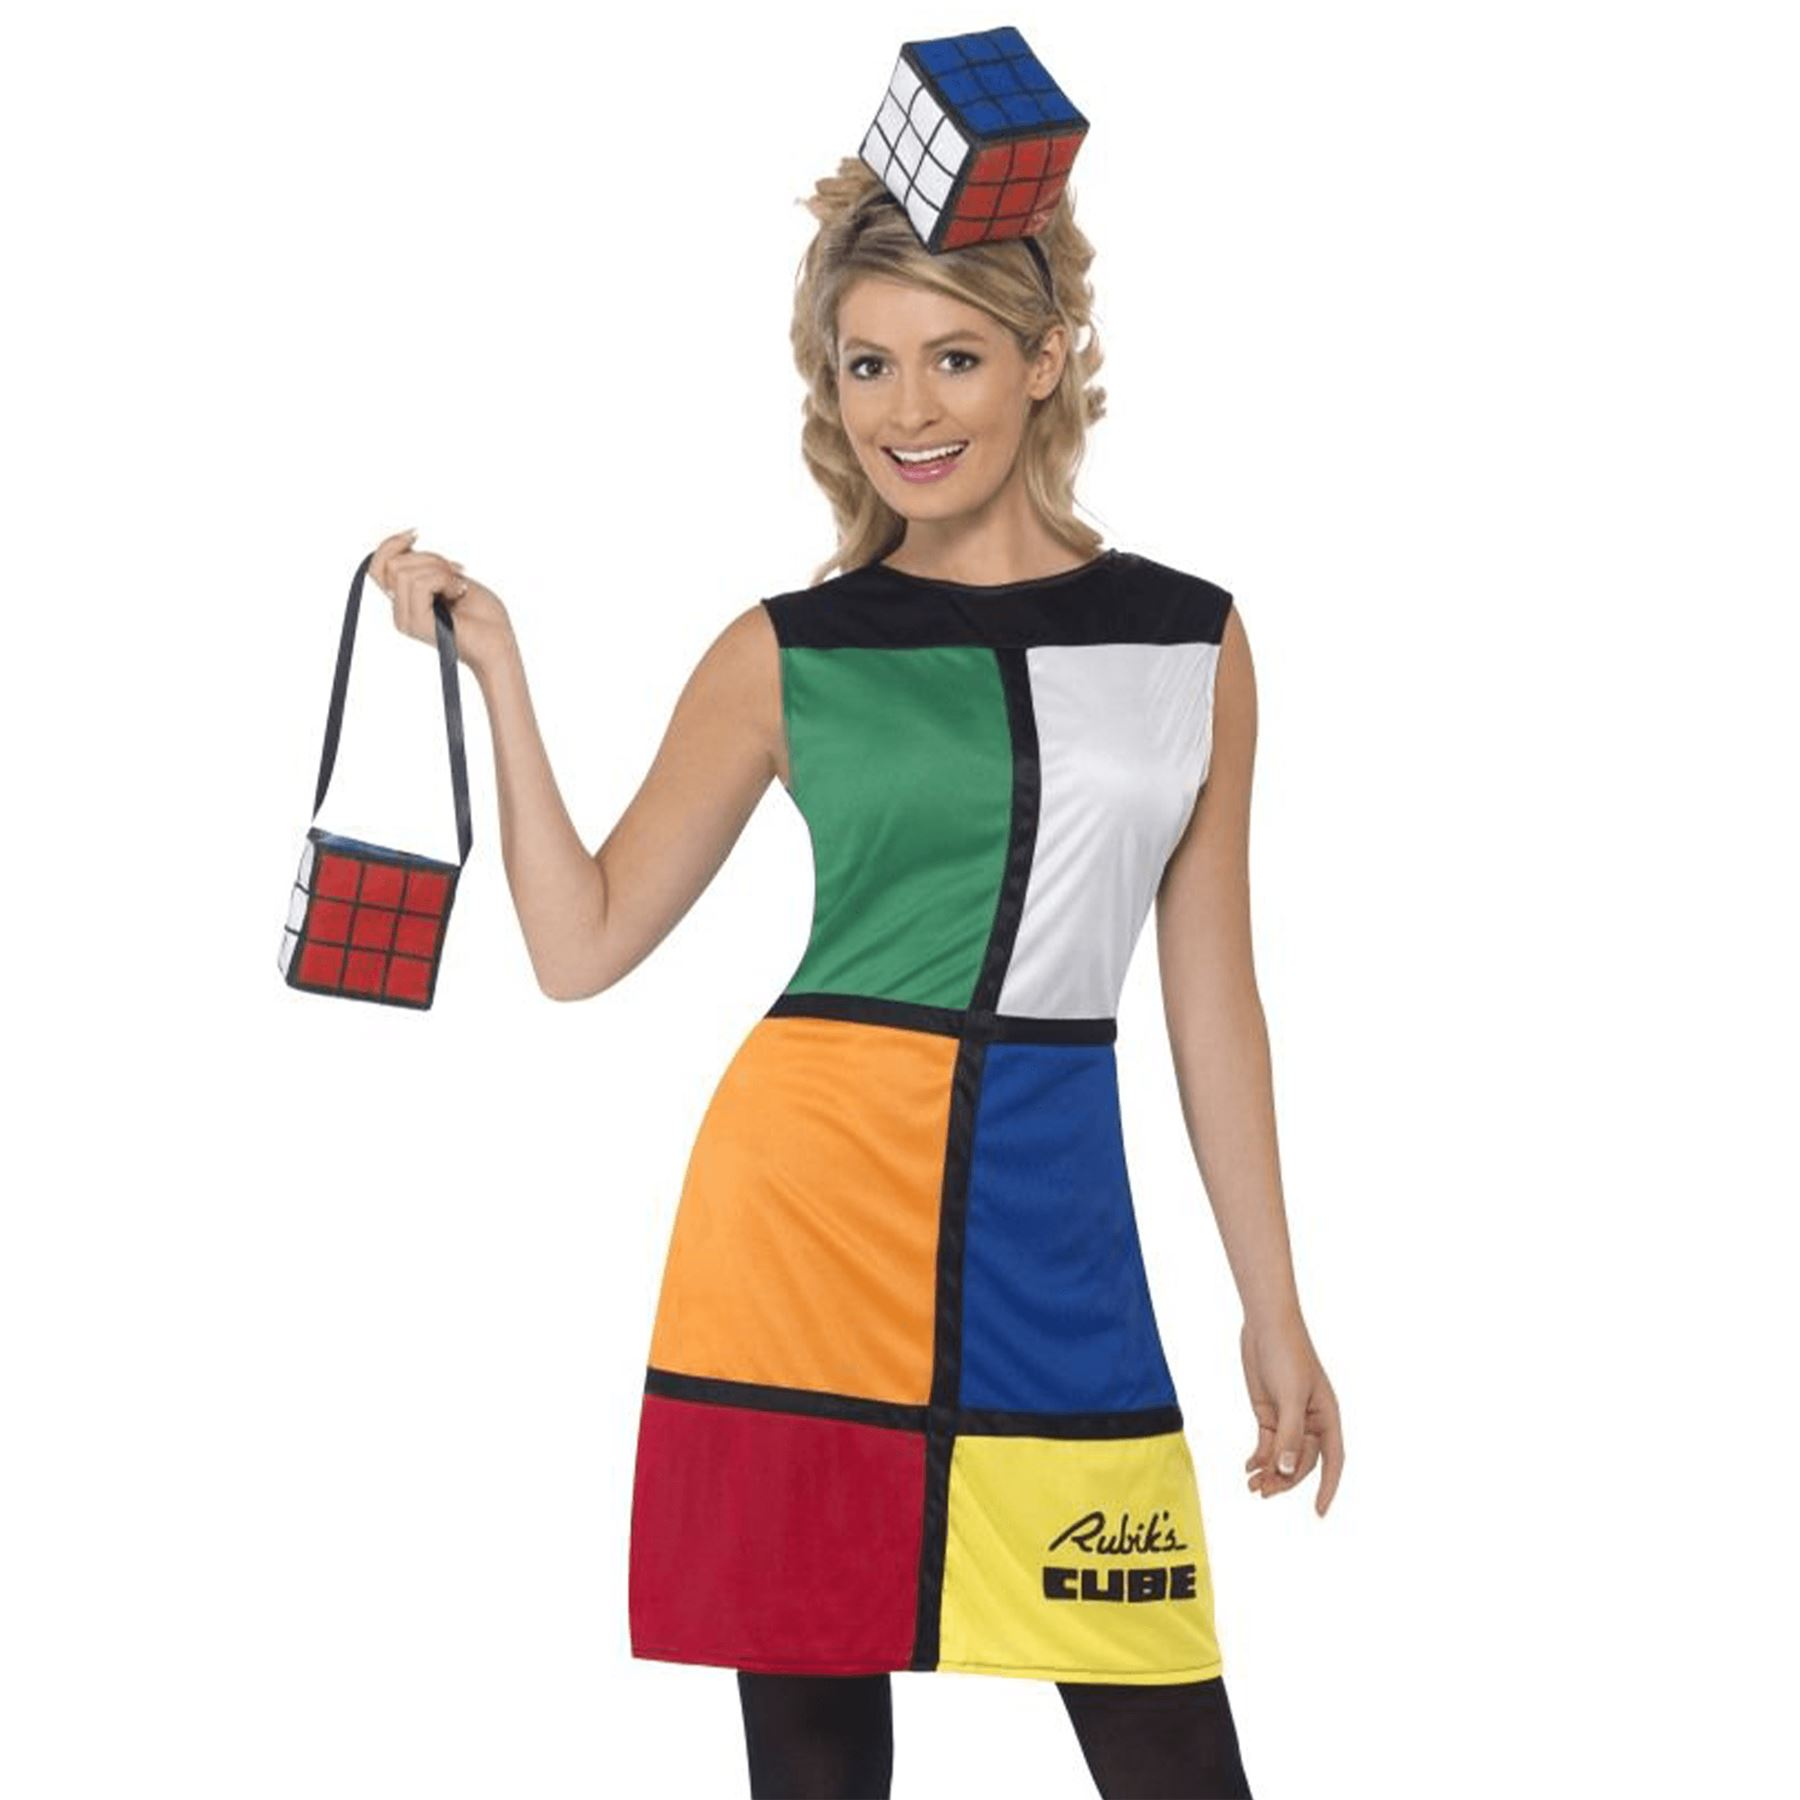 1980s Retro Rubiks Cube Puzzle Ladies Fancy Dress Costume Party Outfit Womens